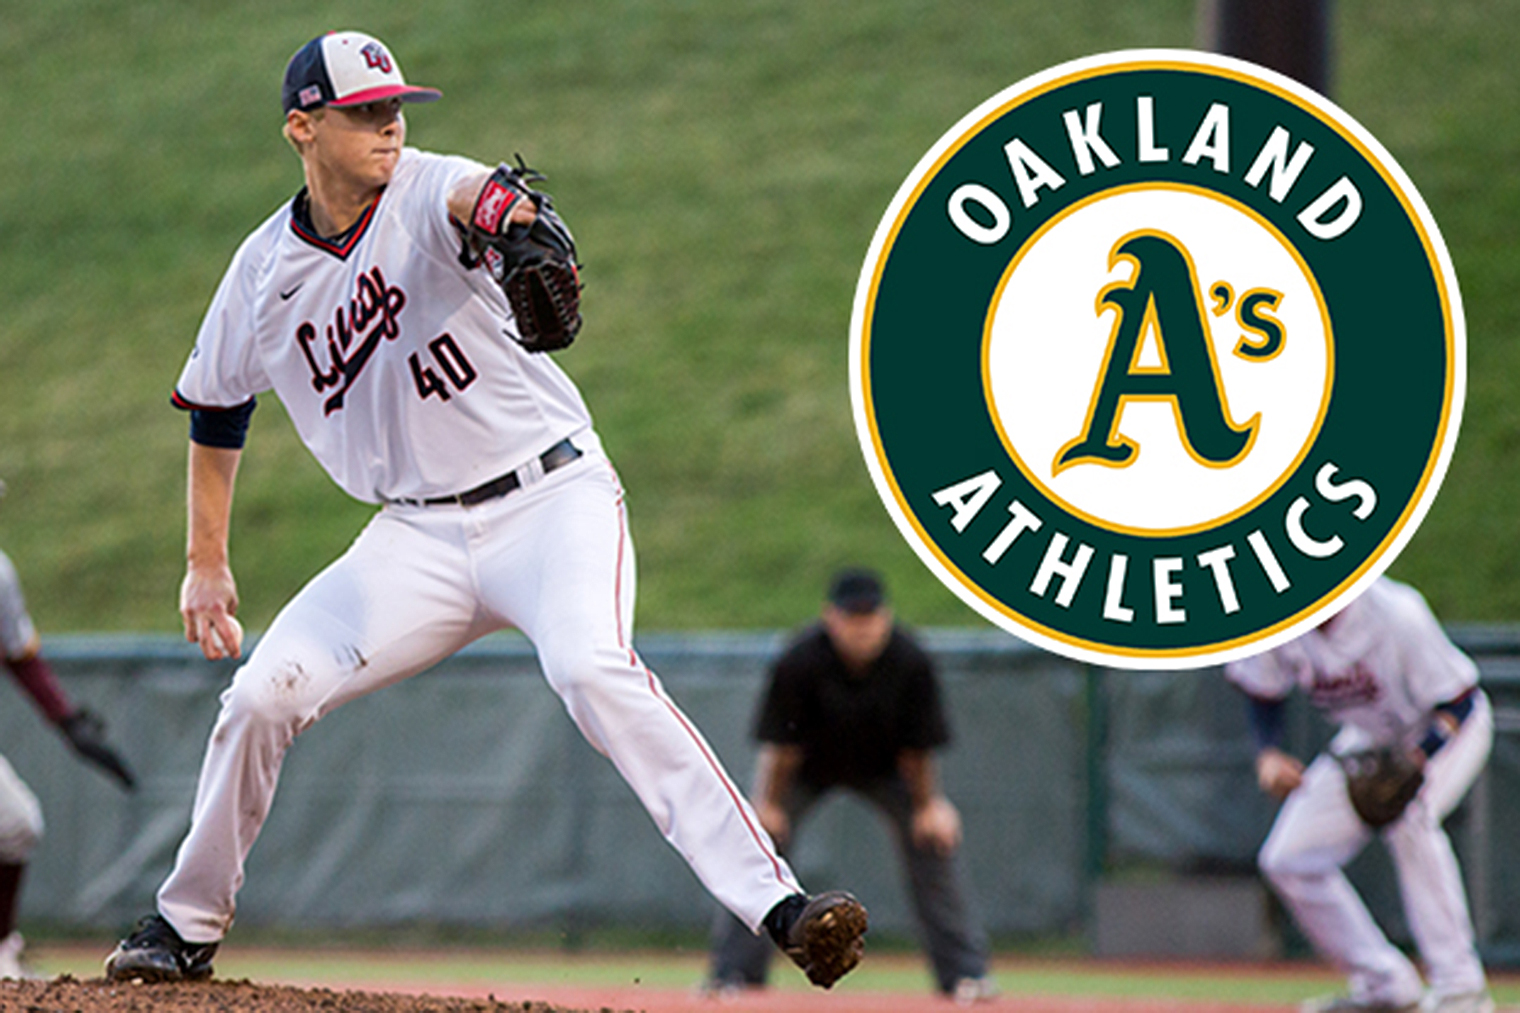 Oakland University Campus Map >> Flames pitcher Evans picked by Oakland A's in Major League Baseball Draft | Liberty University